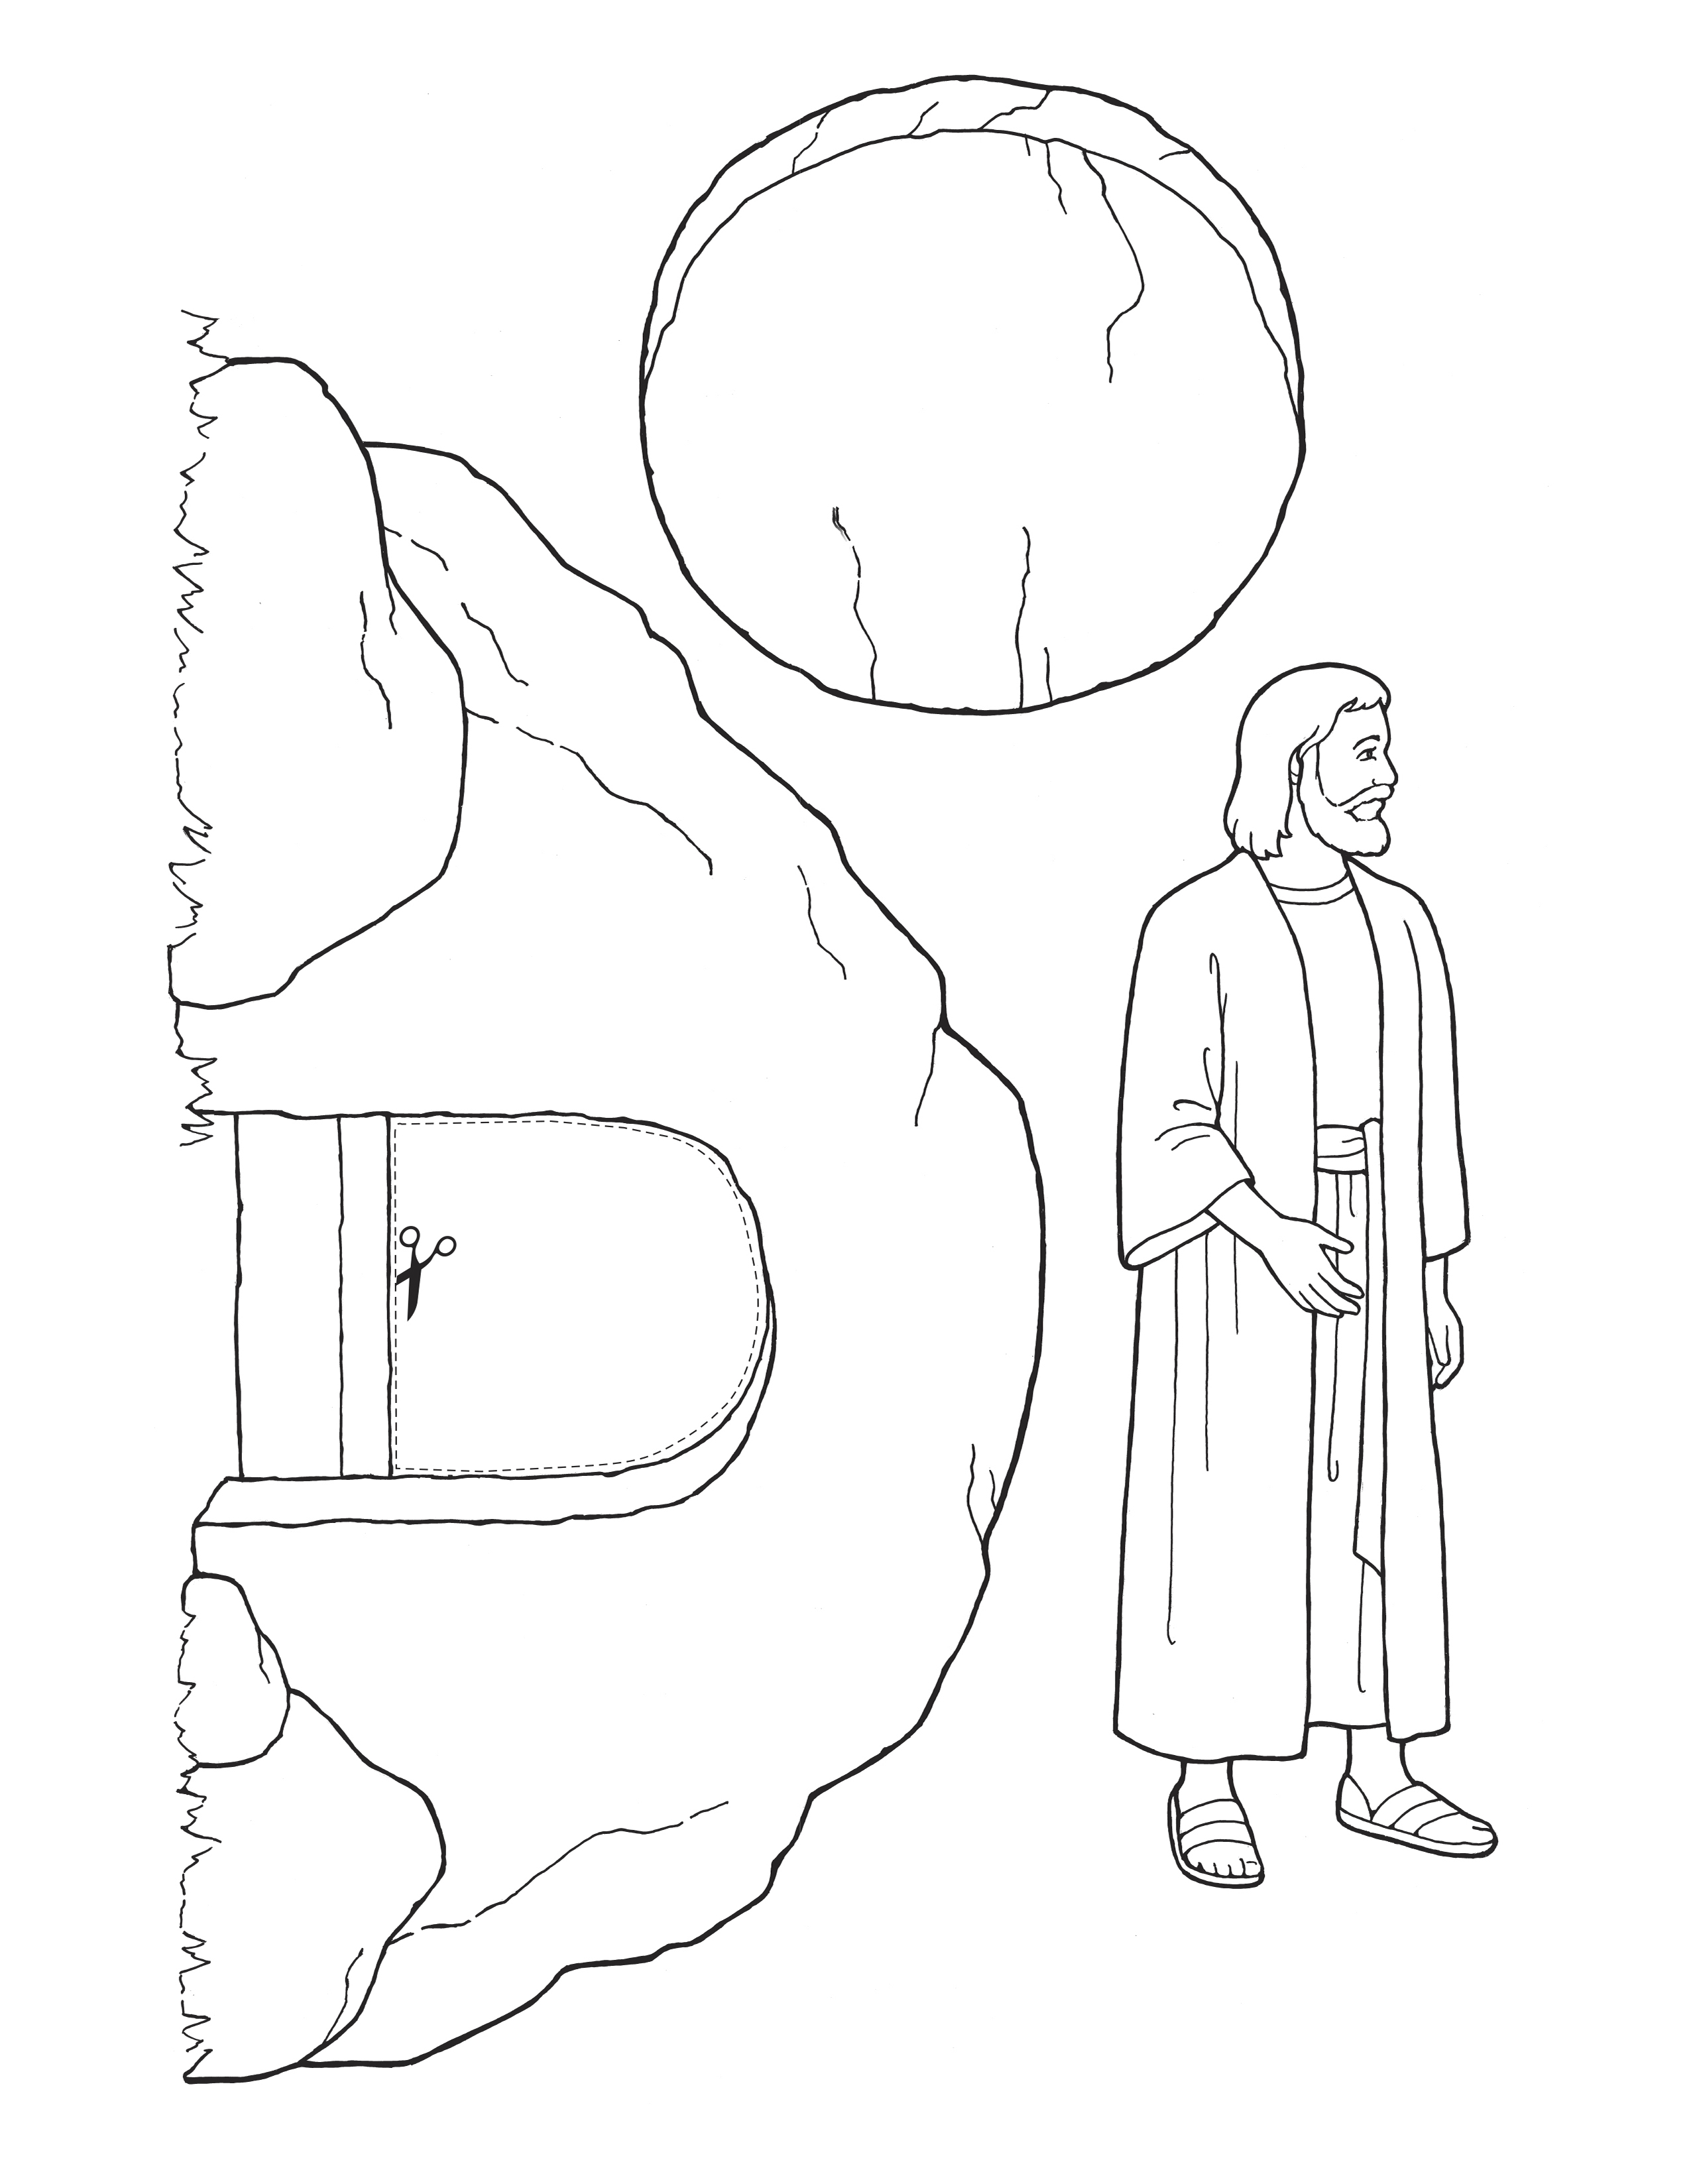 Free Empty Tomb Coloring Page, Download Free Clip Art, Free Clip ... | 3294x2545